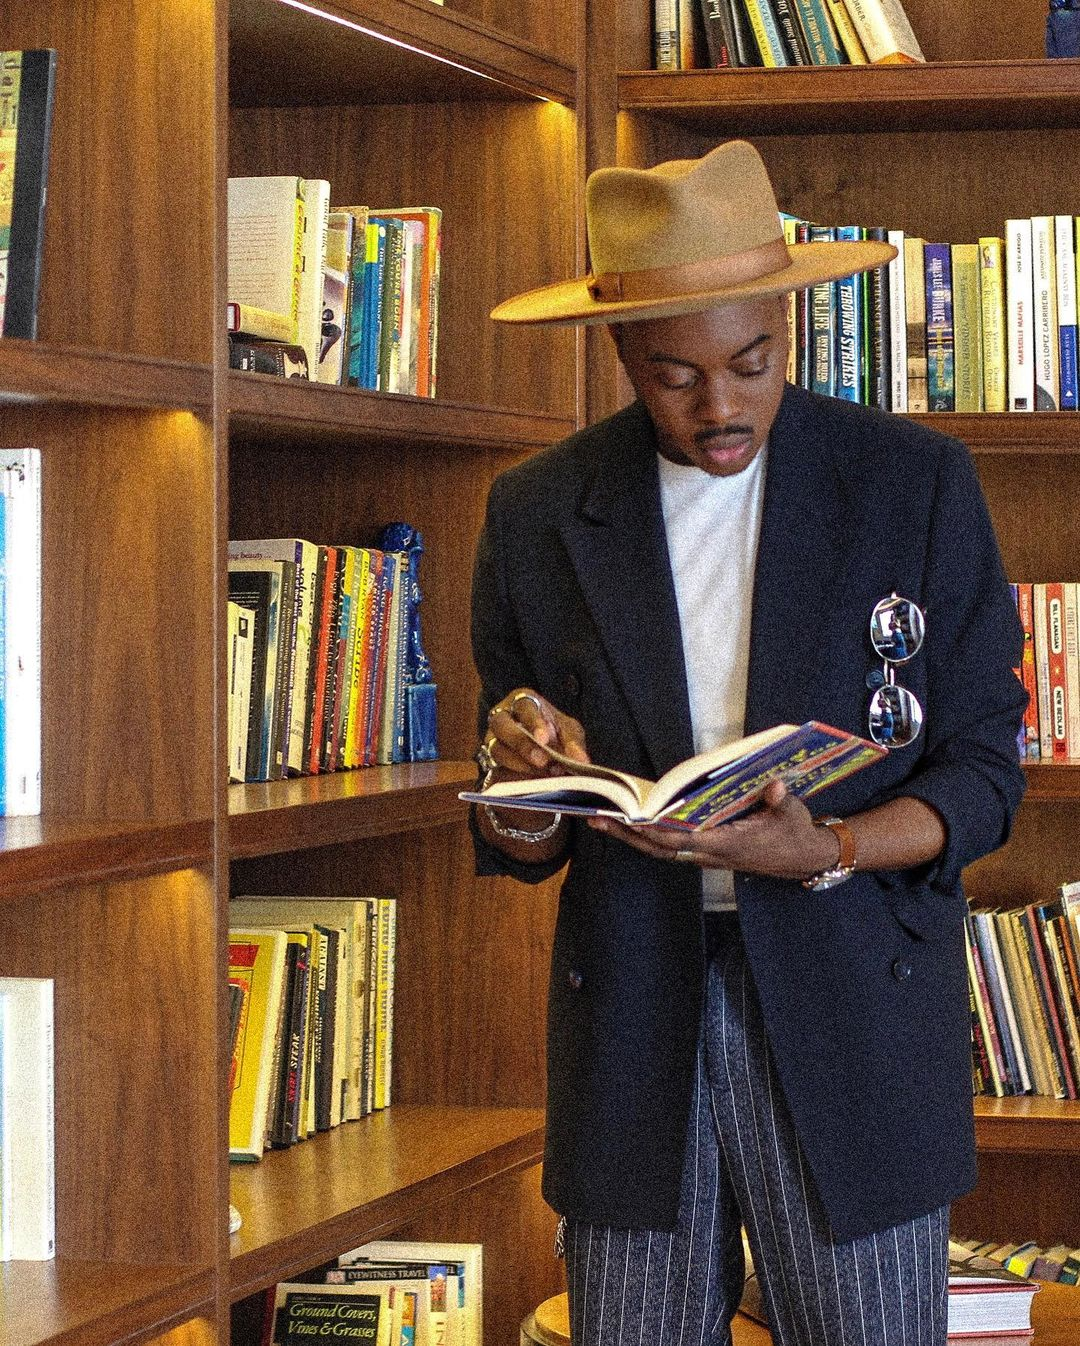 A man reading a book in the Betsy Hotel's library